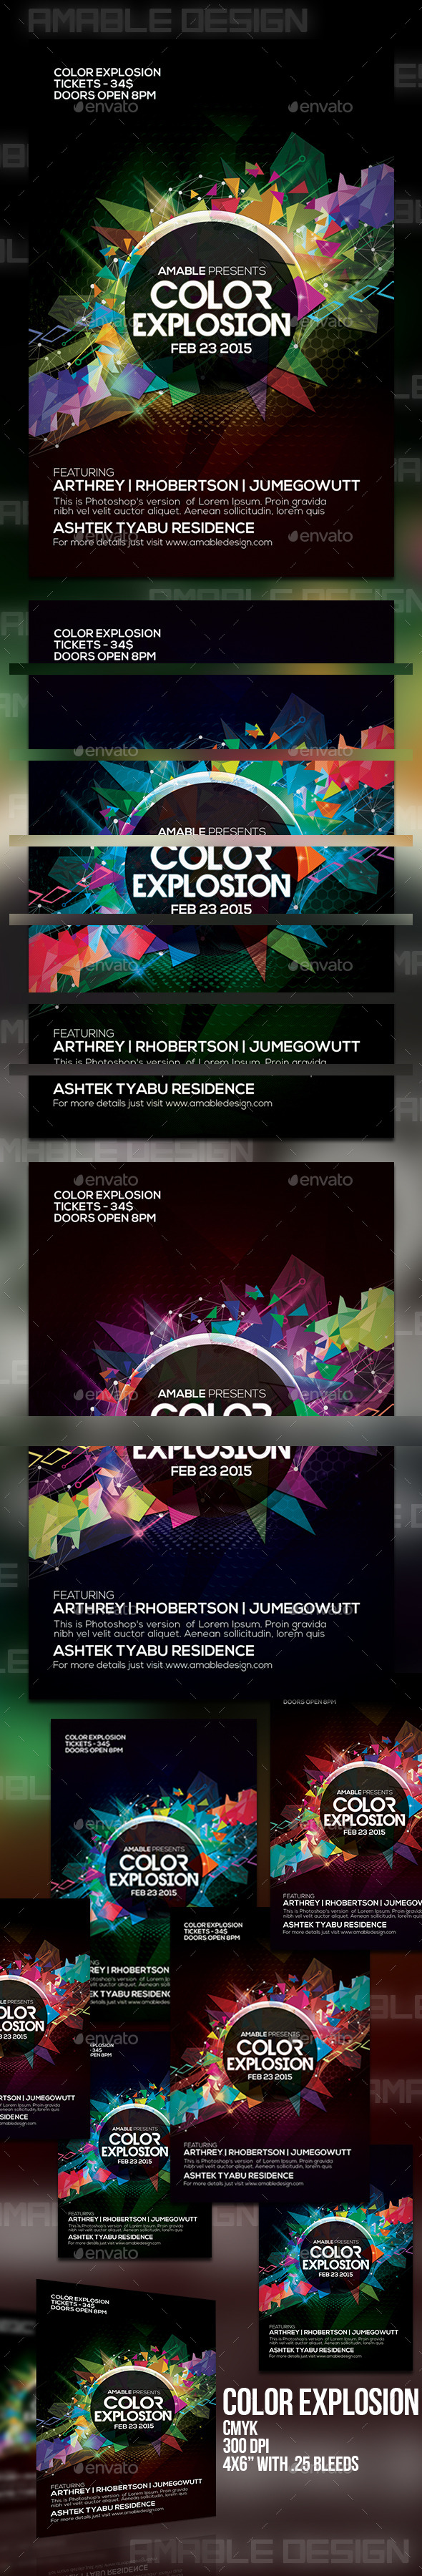 Color Explosion Flyer - Clubs & Parties Events